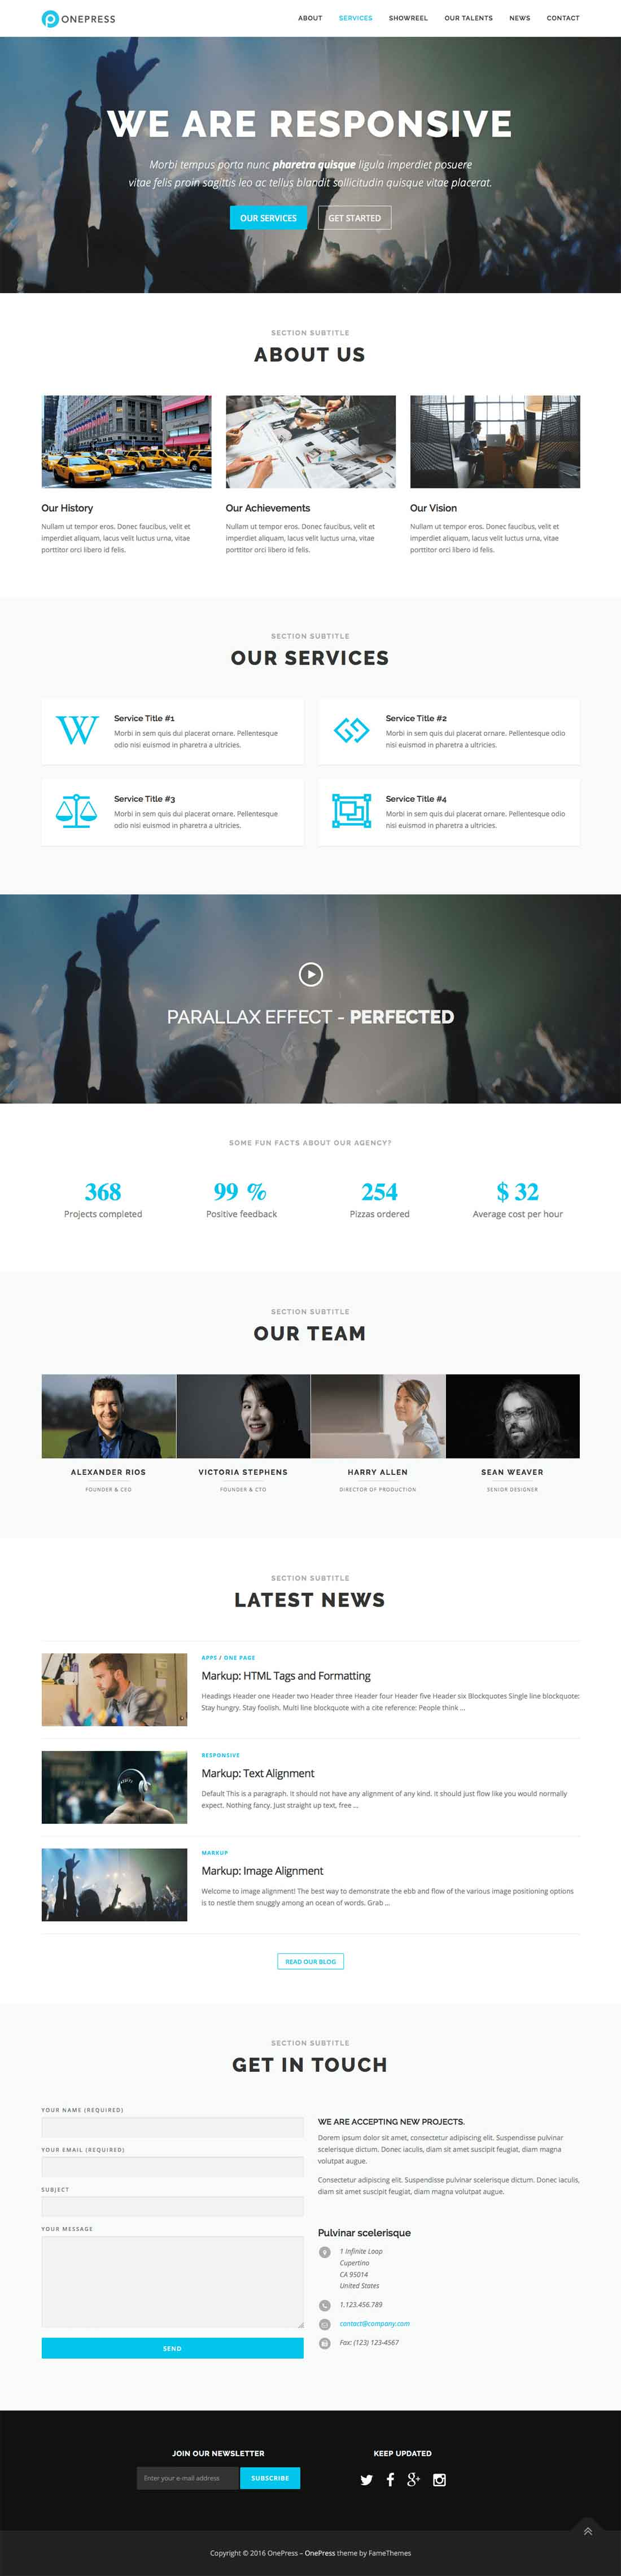 OnePress Free One Page Responsive Portfolio WordPress Theme